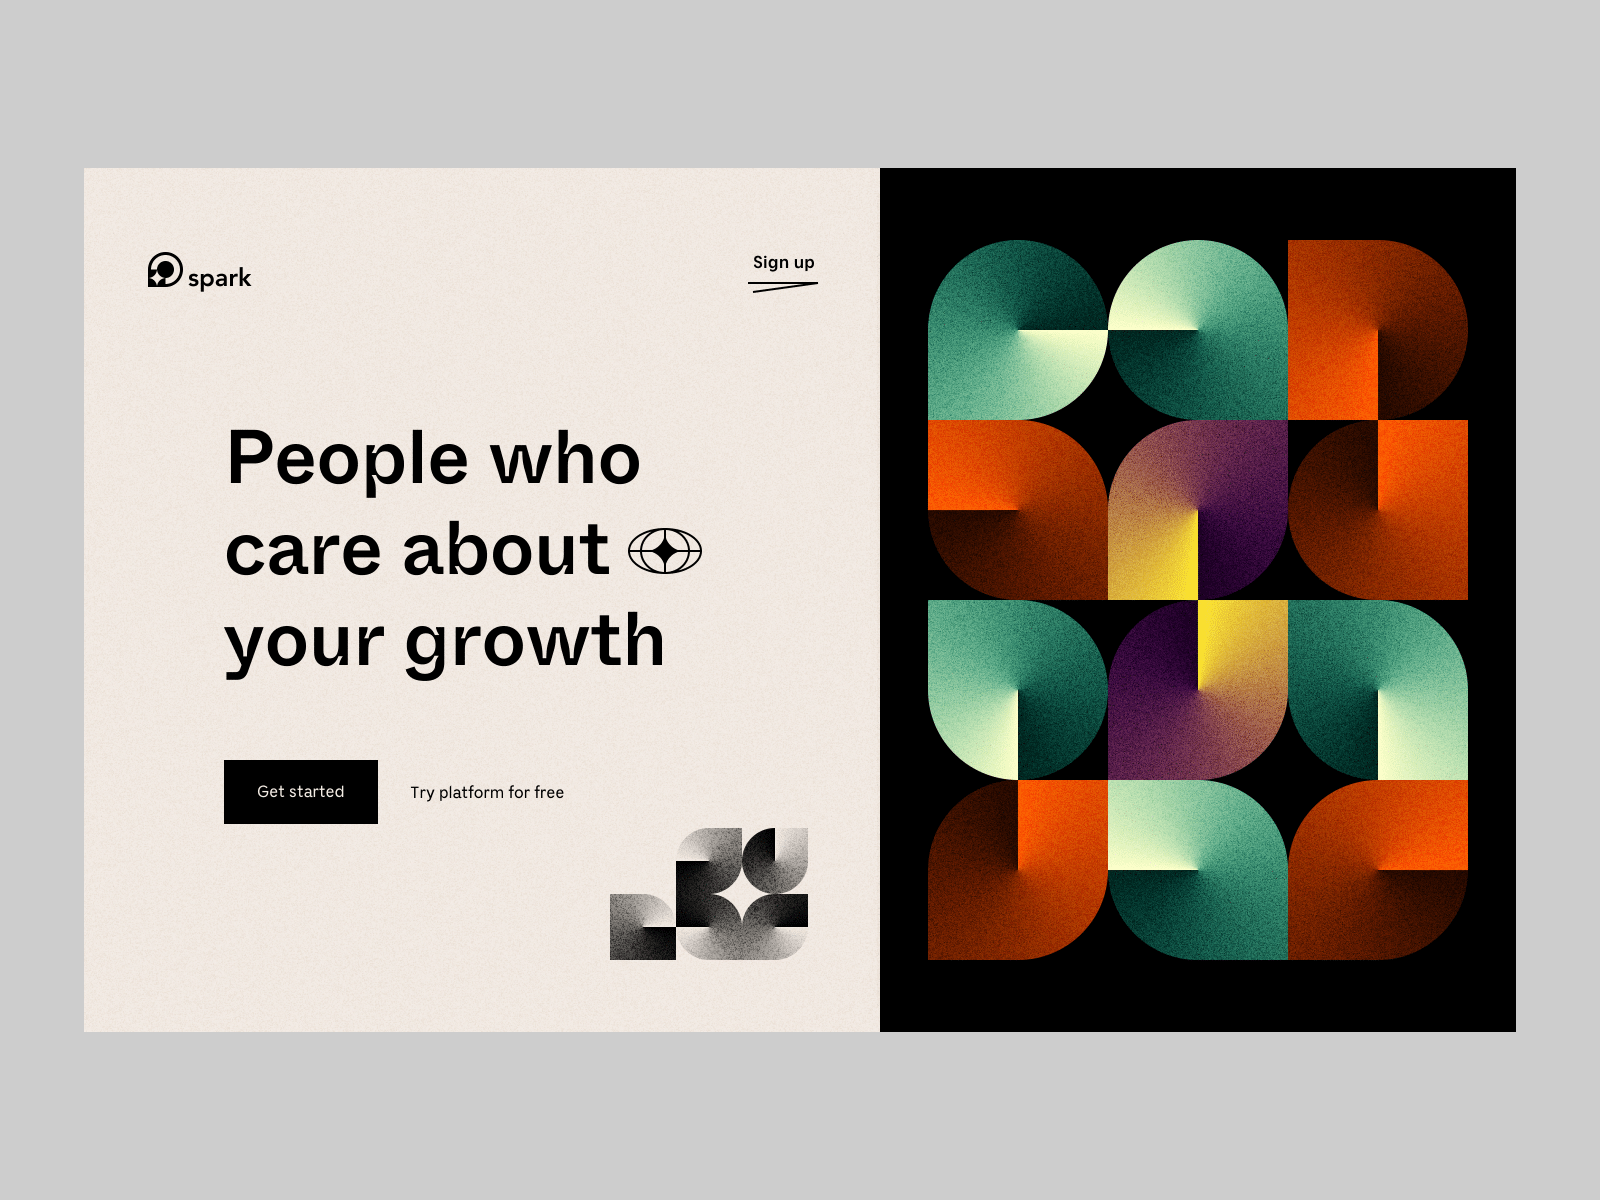 Spark Landing Page by Vladimir Gruev via Dribbble | Two descriptive CTAs, that clarify which is for what.